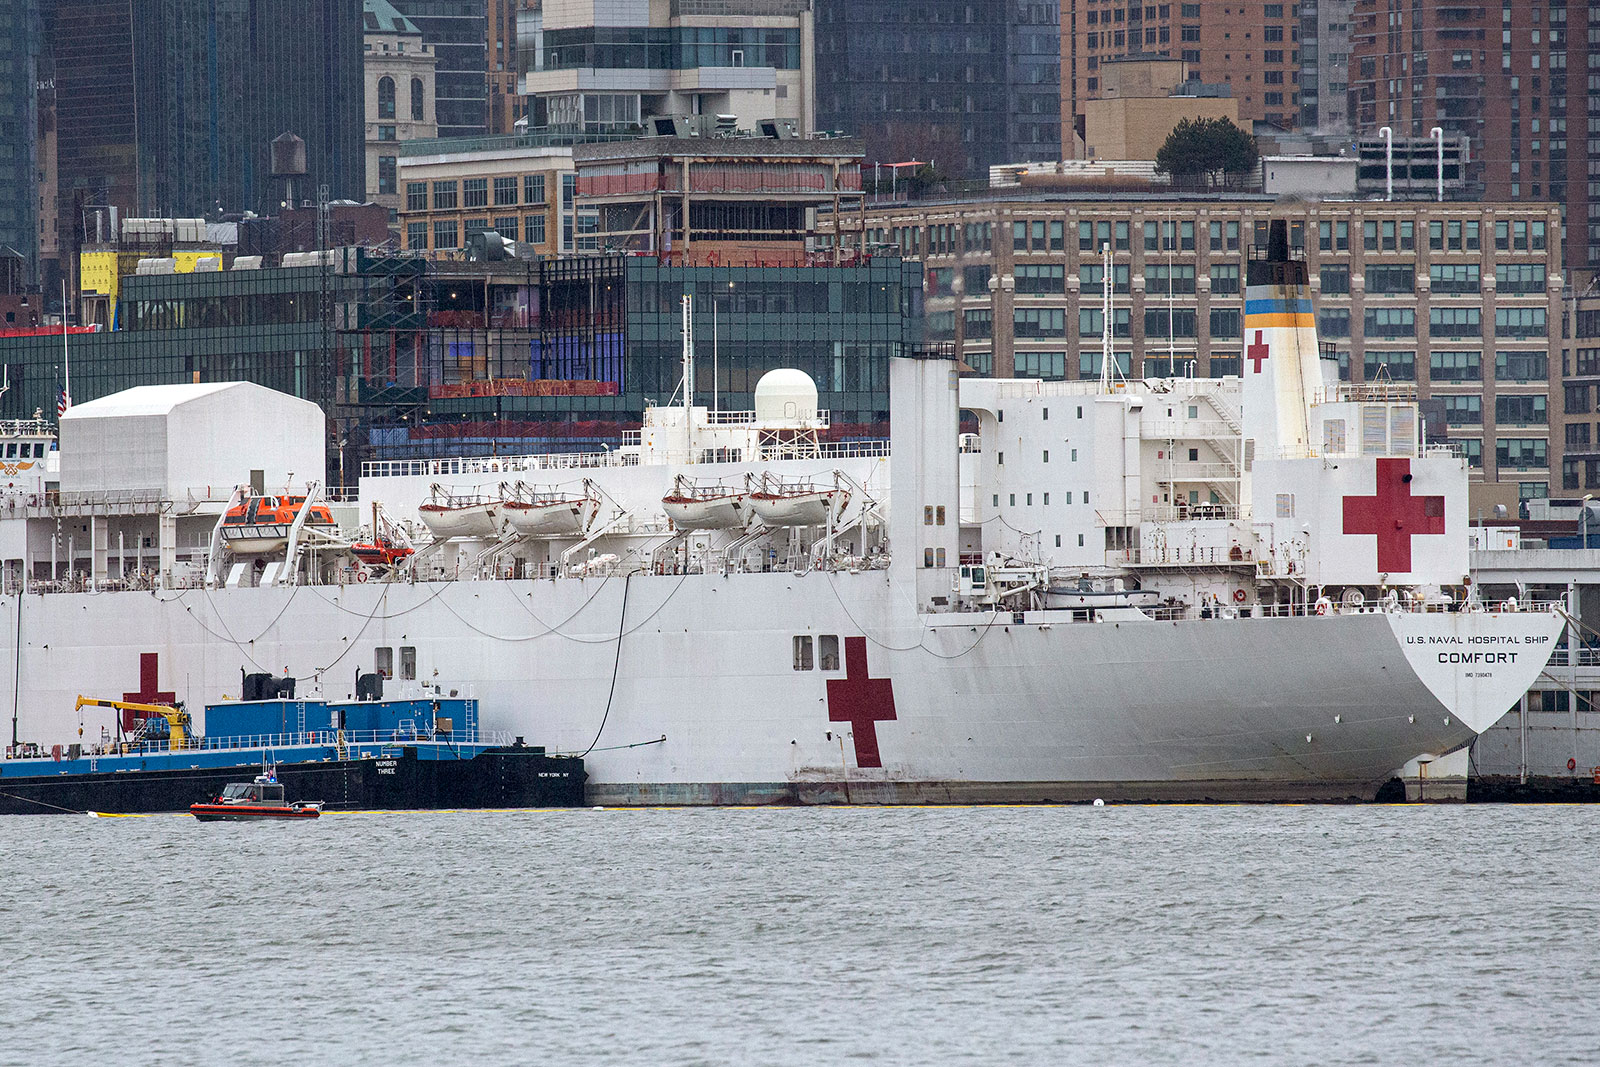 The USNS Comfort docked at Pier 90 in Manhattan on April 3. Ten patients were transported to the ship after a New York City hospital had issues with its oxygen supply Tuesday night.